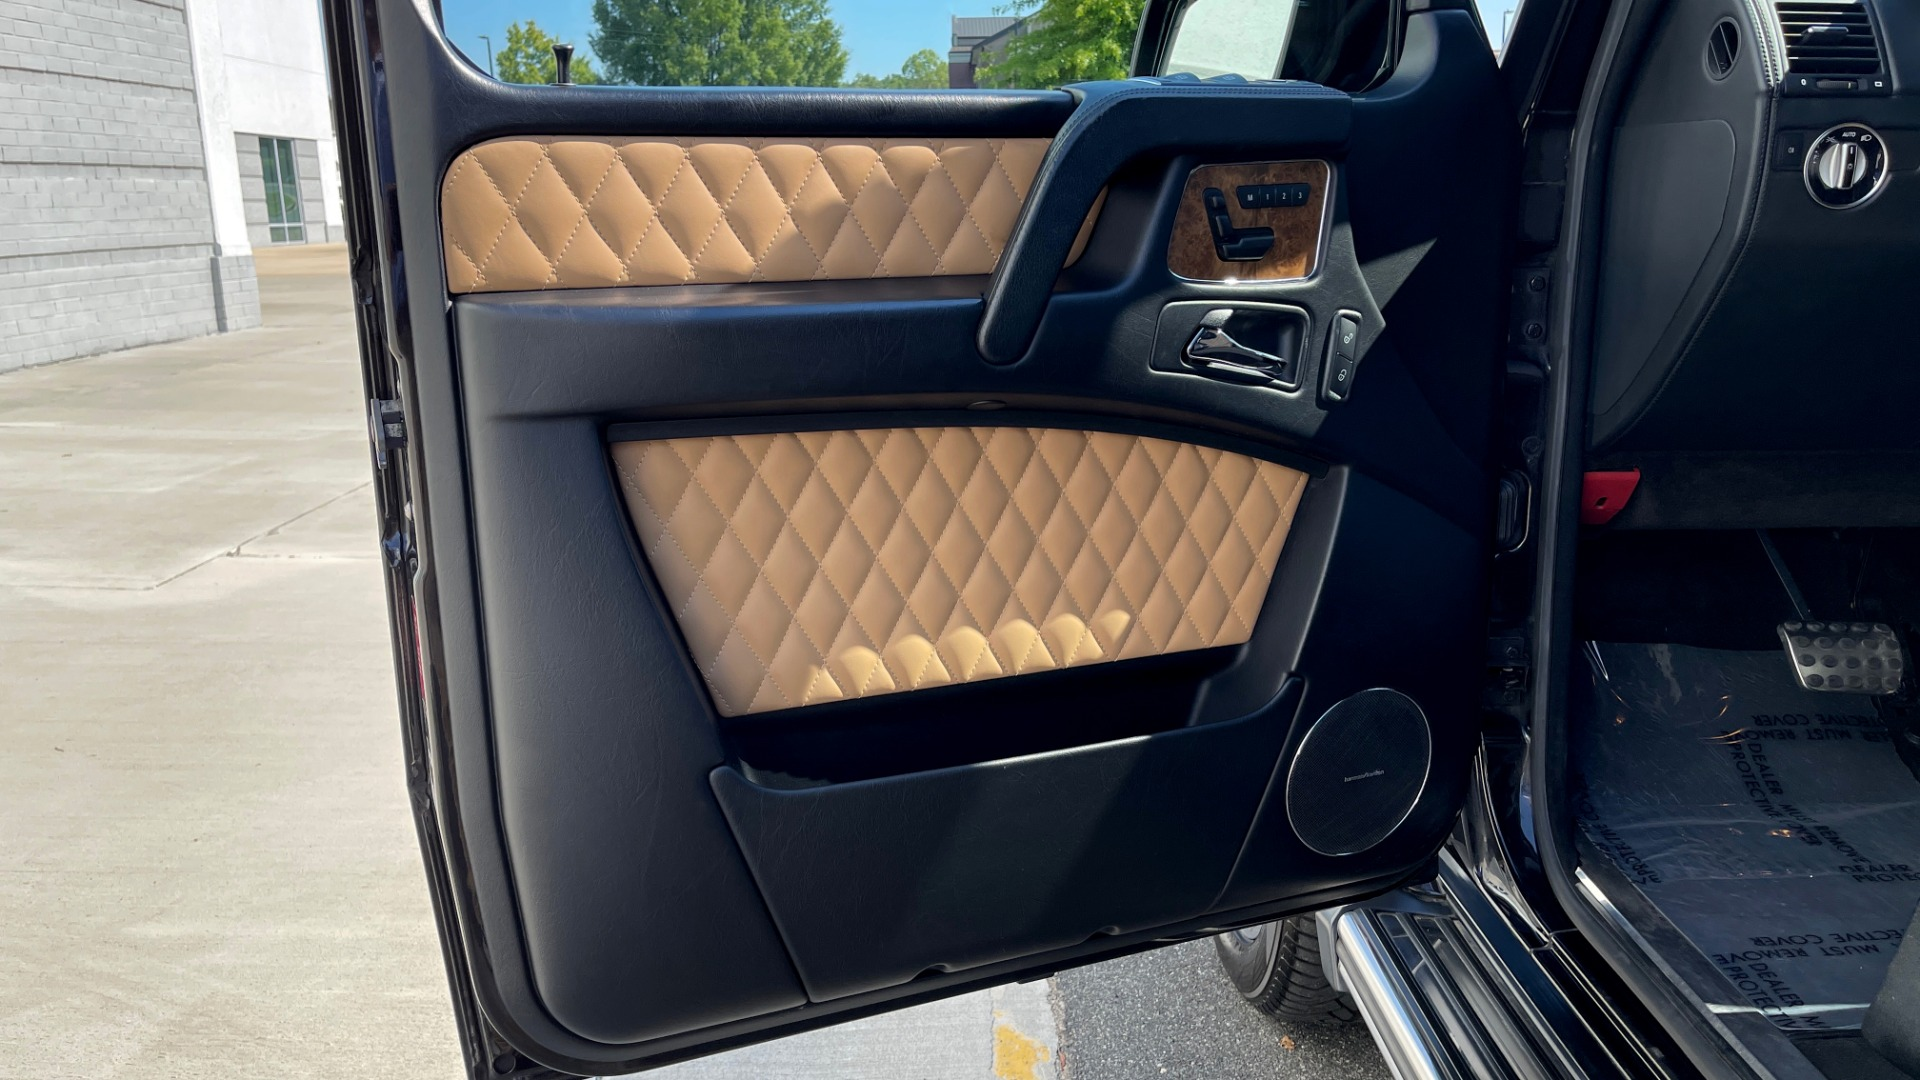 Used 2014 Mercedes-Benz G-CLASS G 63 AMG / DISGNO LEATHER / NAV / SUNROOF / REARVIEW for sale $88,999 at Formula Imports in Charlotte NC 28227 23